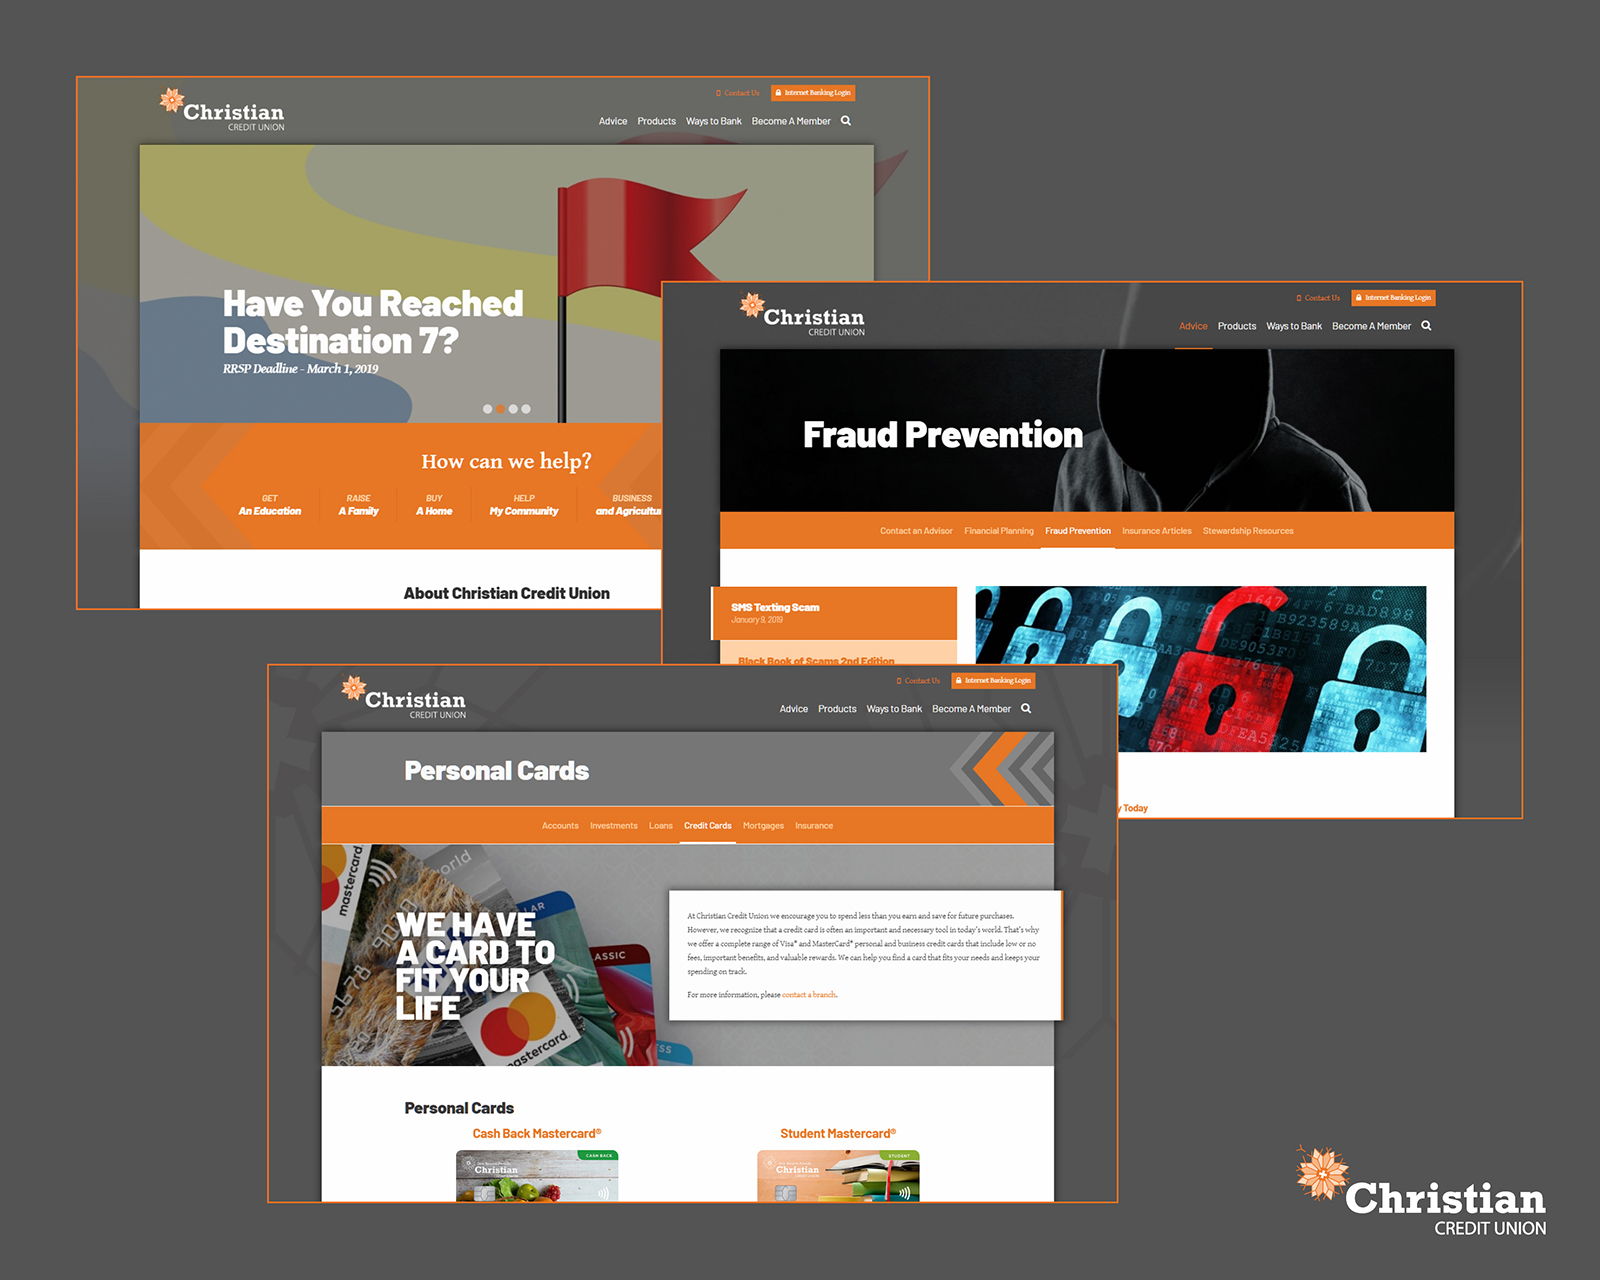 Website pages from Christian Credit Union.